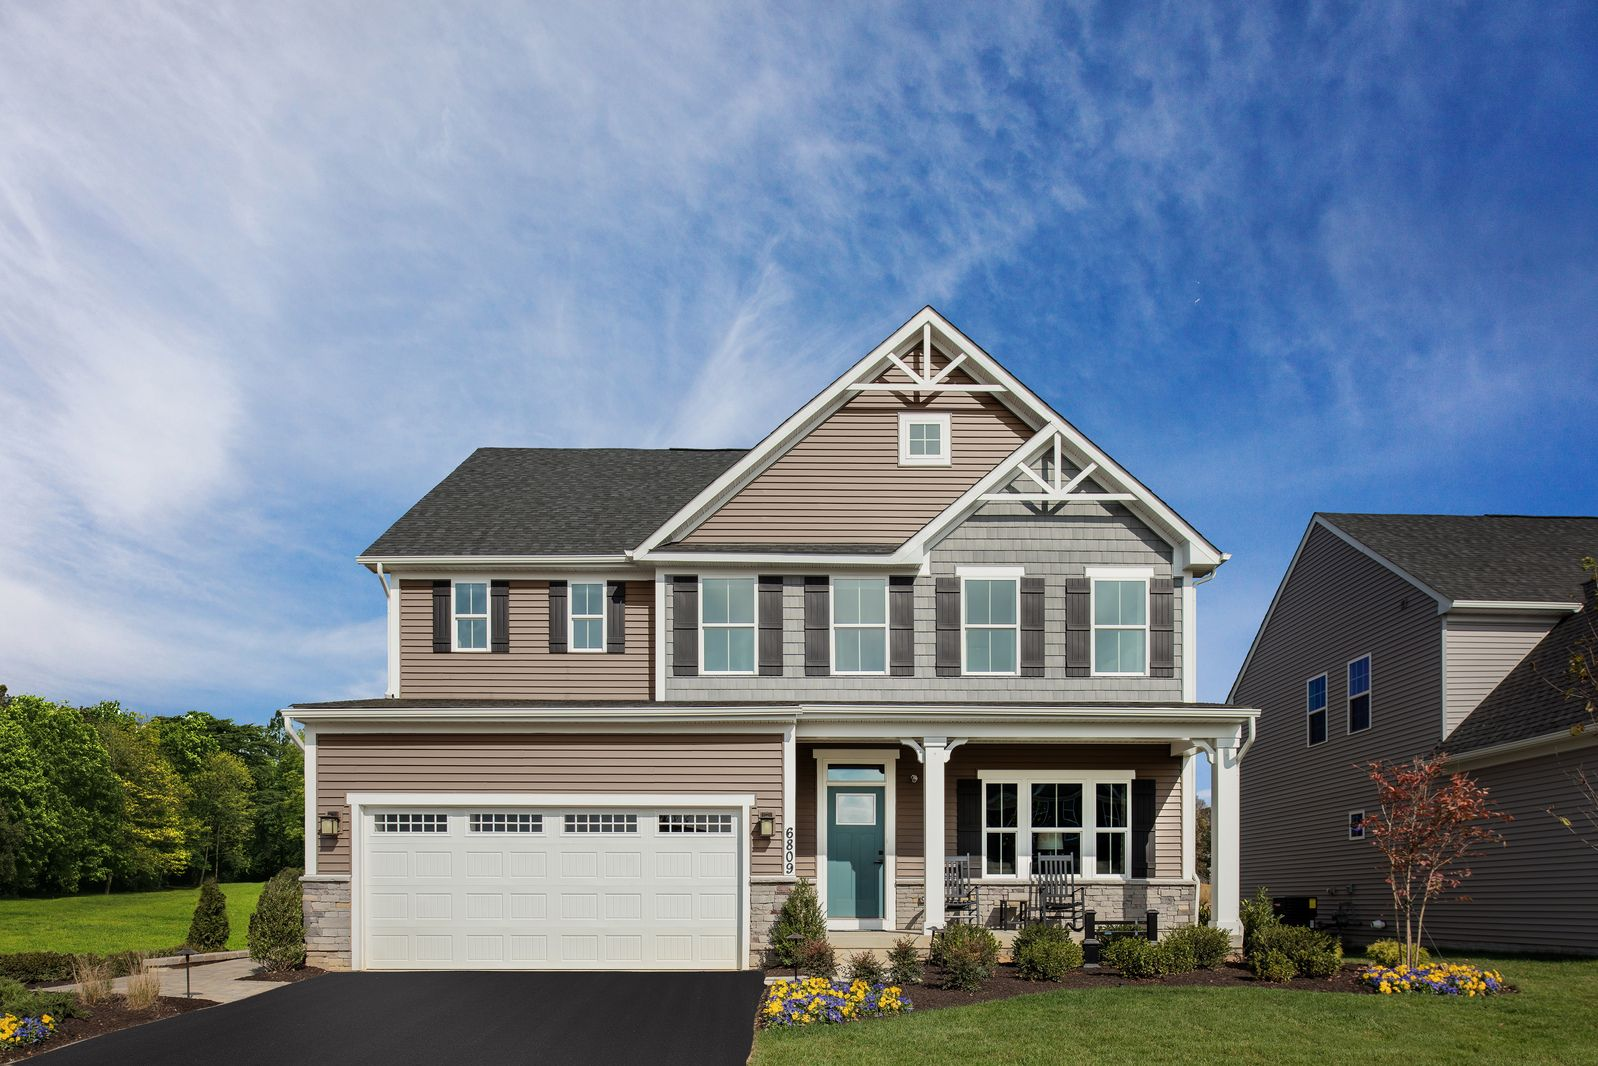 WELCOME TO BALLENGER RUN IN FREDERICK, MD:The Enclave at Ballenger Run offers single family homes that are perfectly tucked away yet only 1 mile to I-70 & I-270. Plus, enjoy resort-style amenities too!Schedule your appointment today!